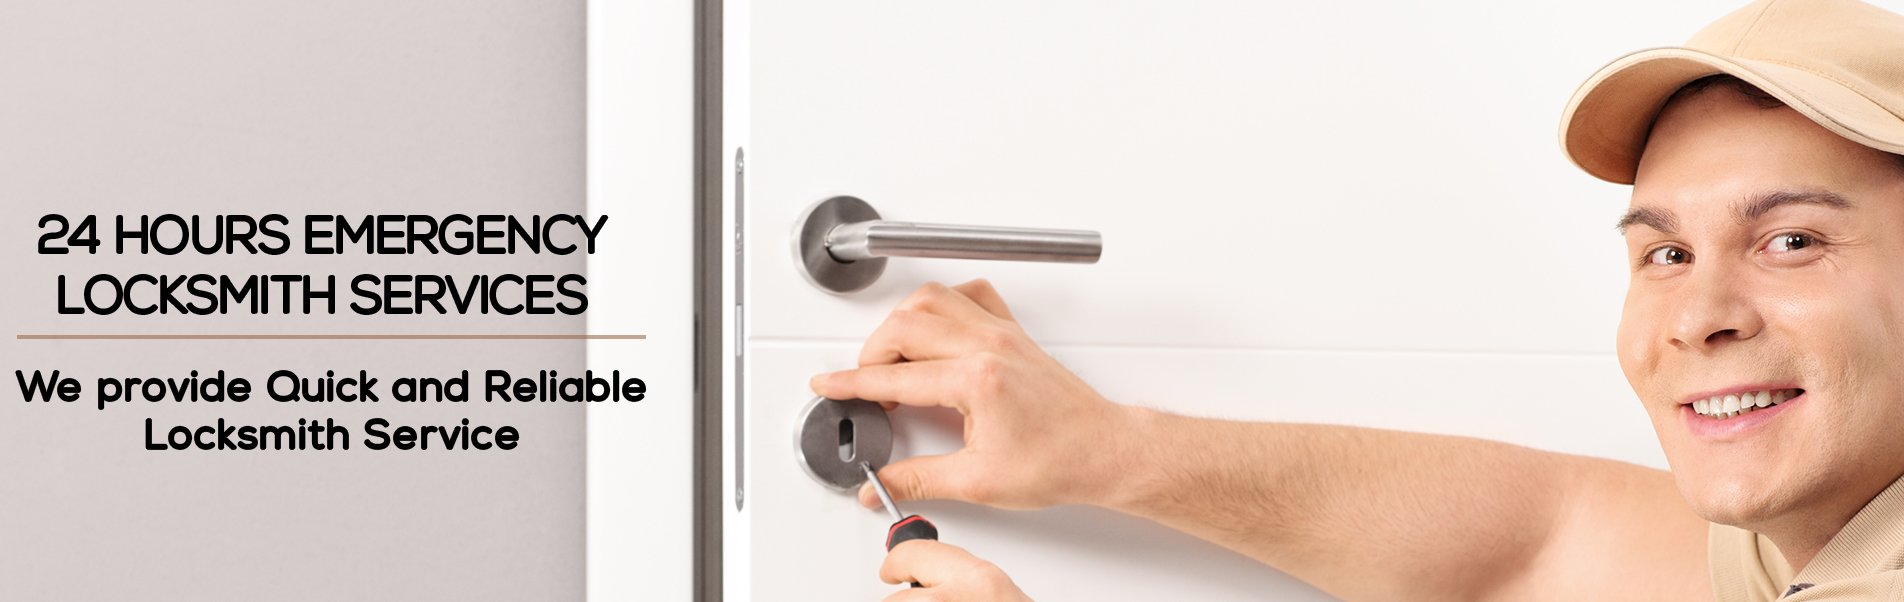 West Palm Beach Express Locksmith West Palm Beach, FL 561-273-8376